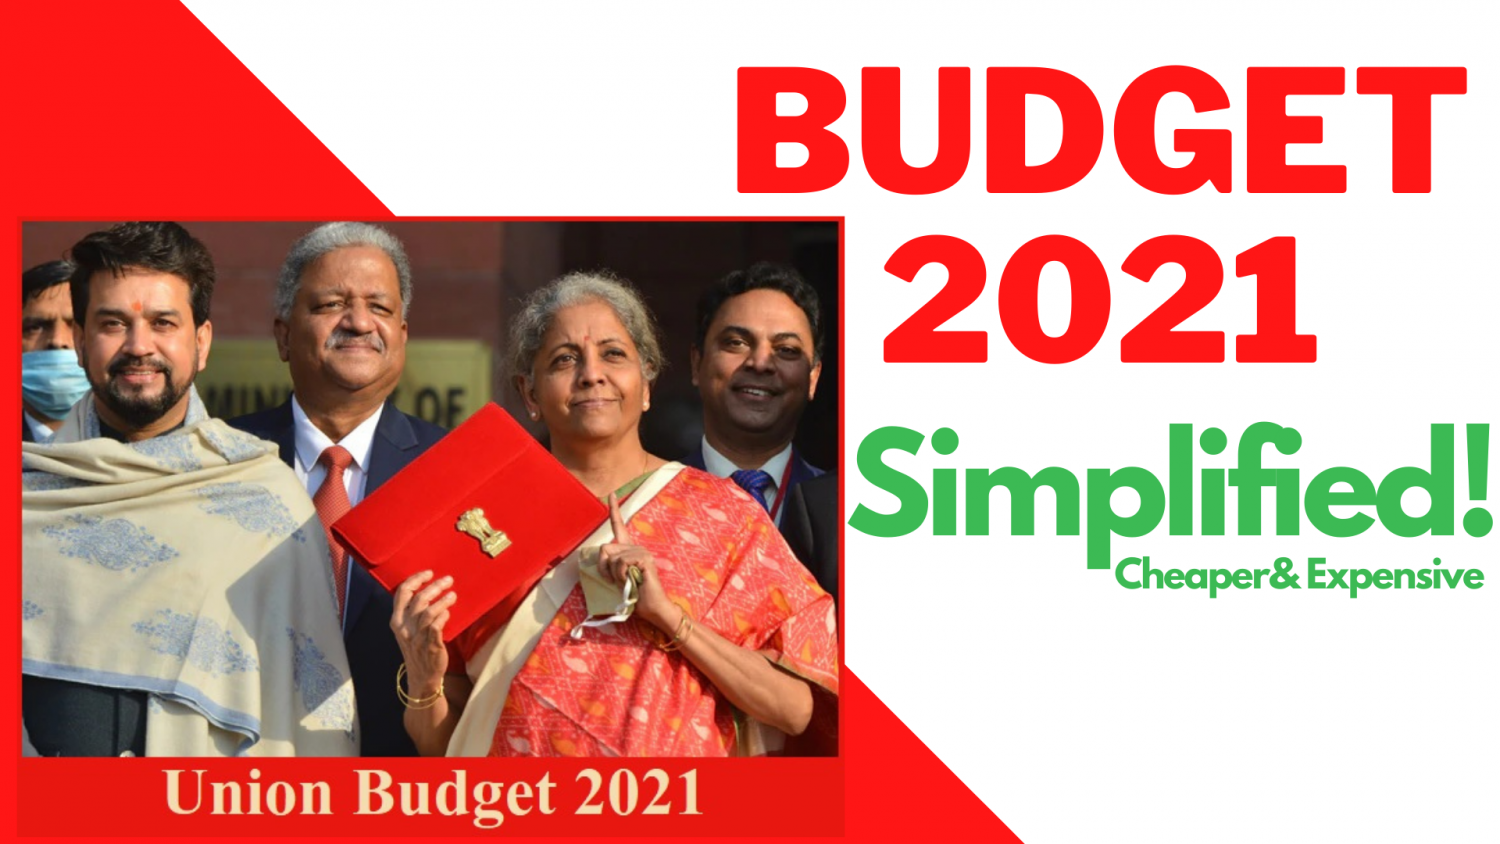 https://www.clubinfonline.com/2021/02/03/union-budget-2020-21-simplified-what-is-costler-and-cheaper/